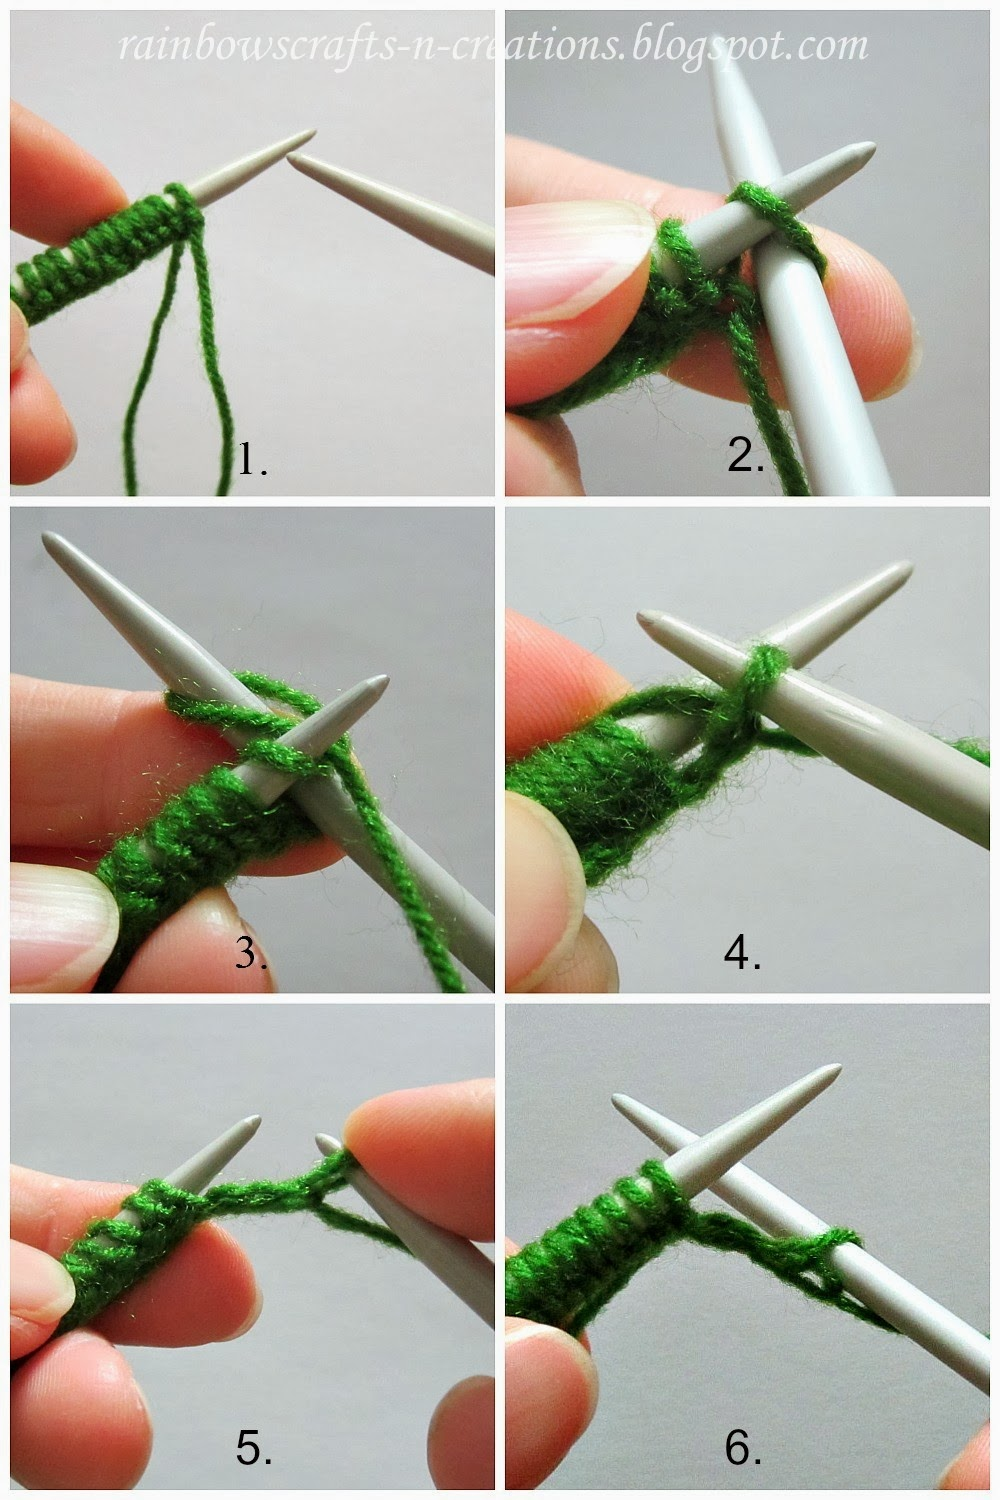 Rainbows Crafts and Creations: Knit Stitch and Purl Stitch